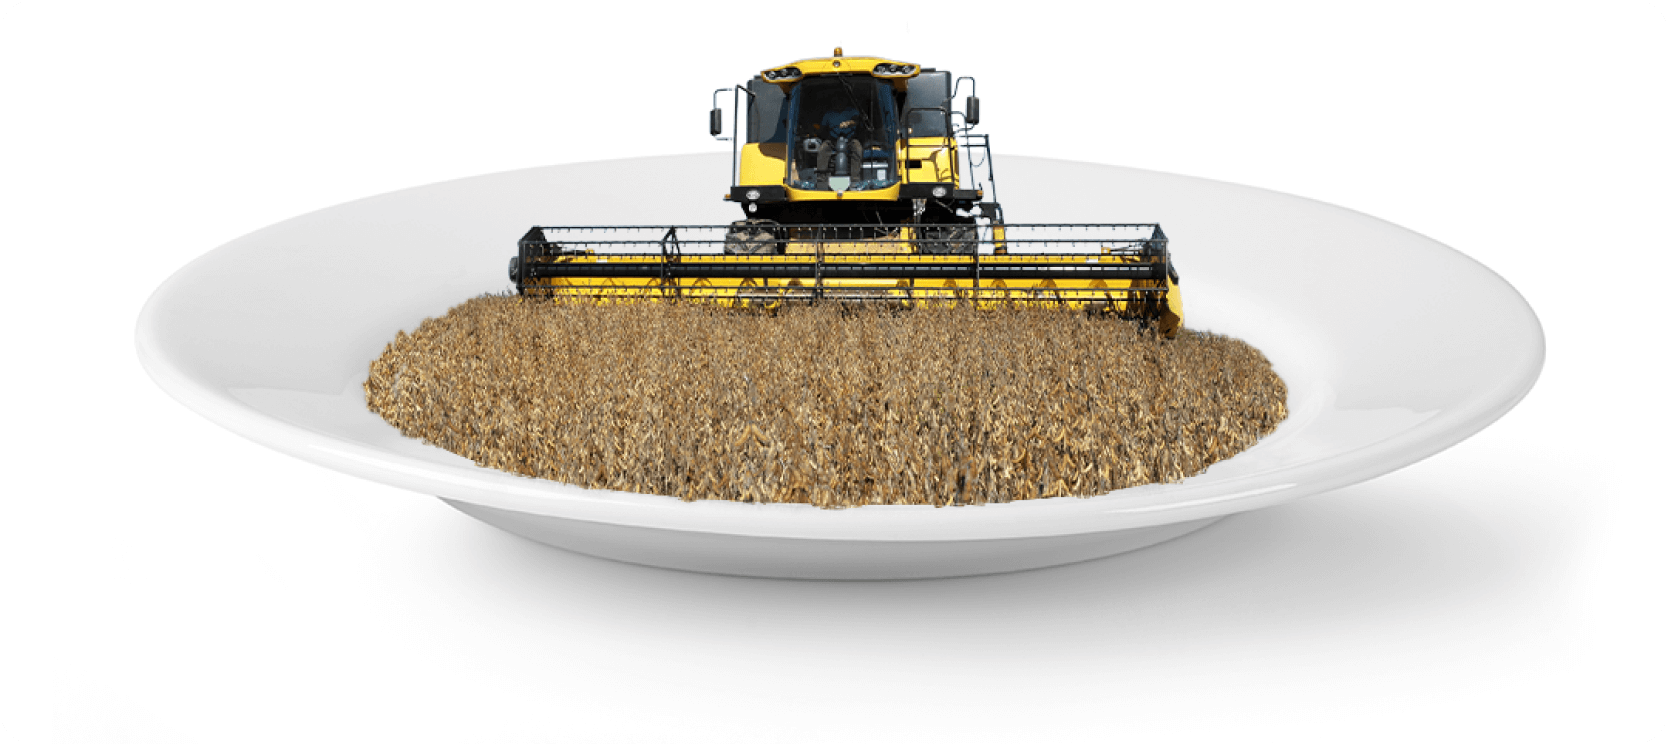 Soybean harvest inside a white plate